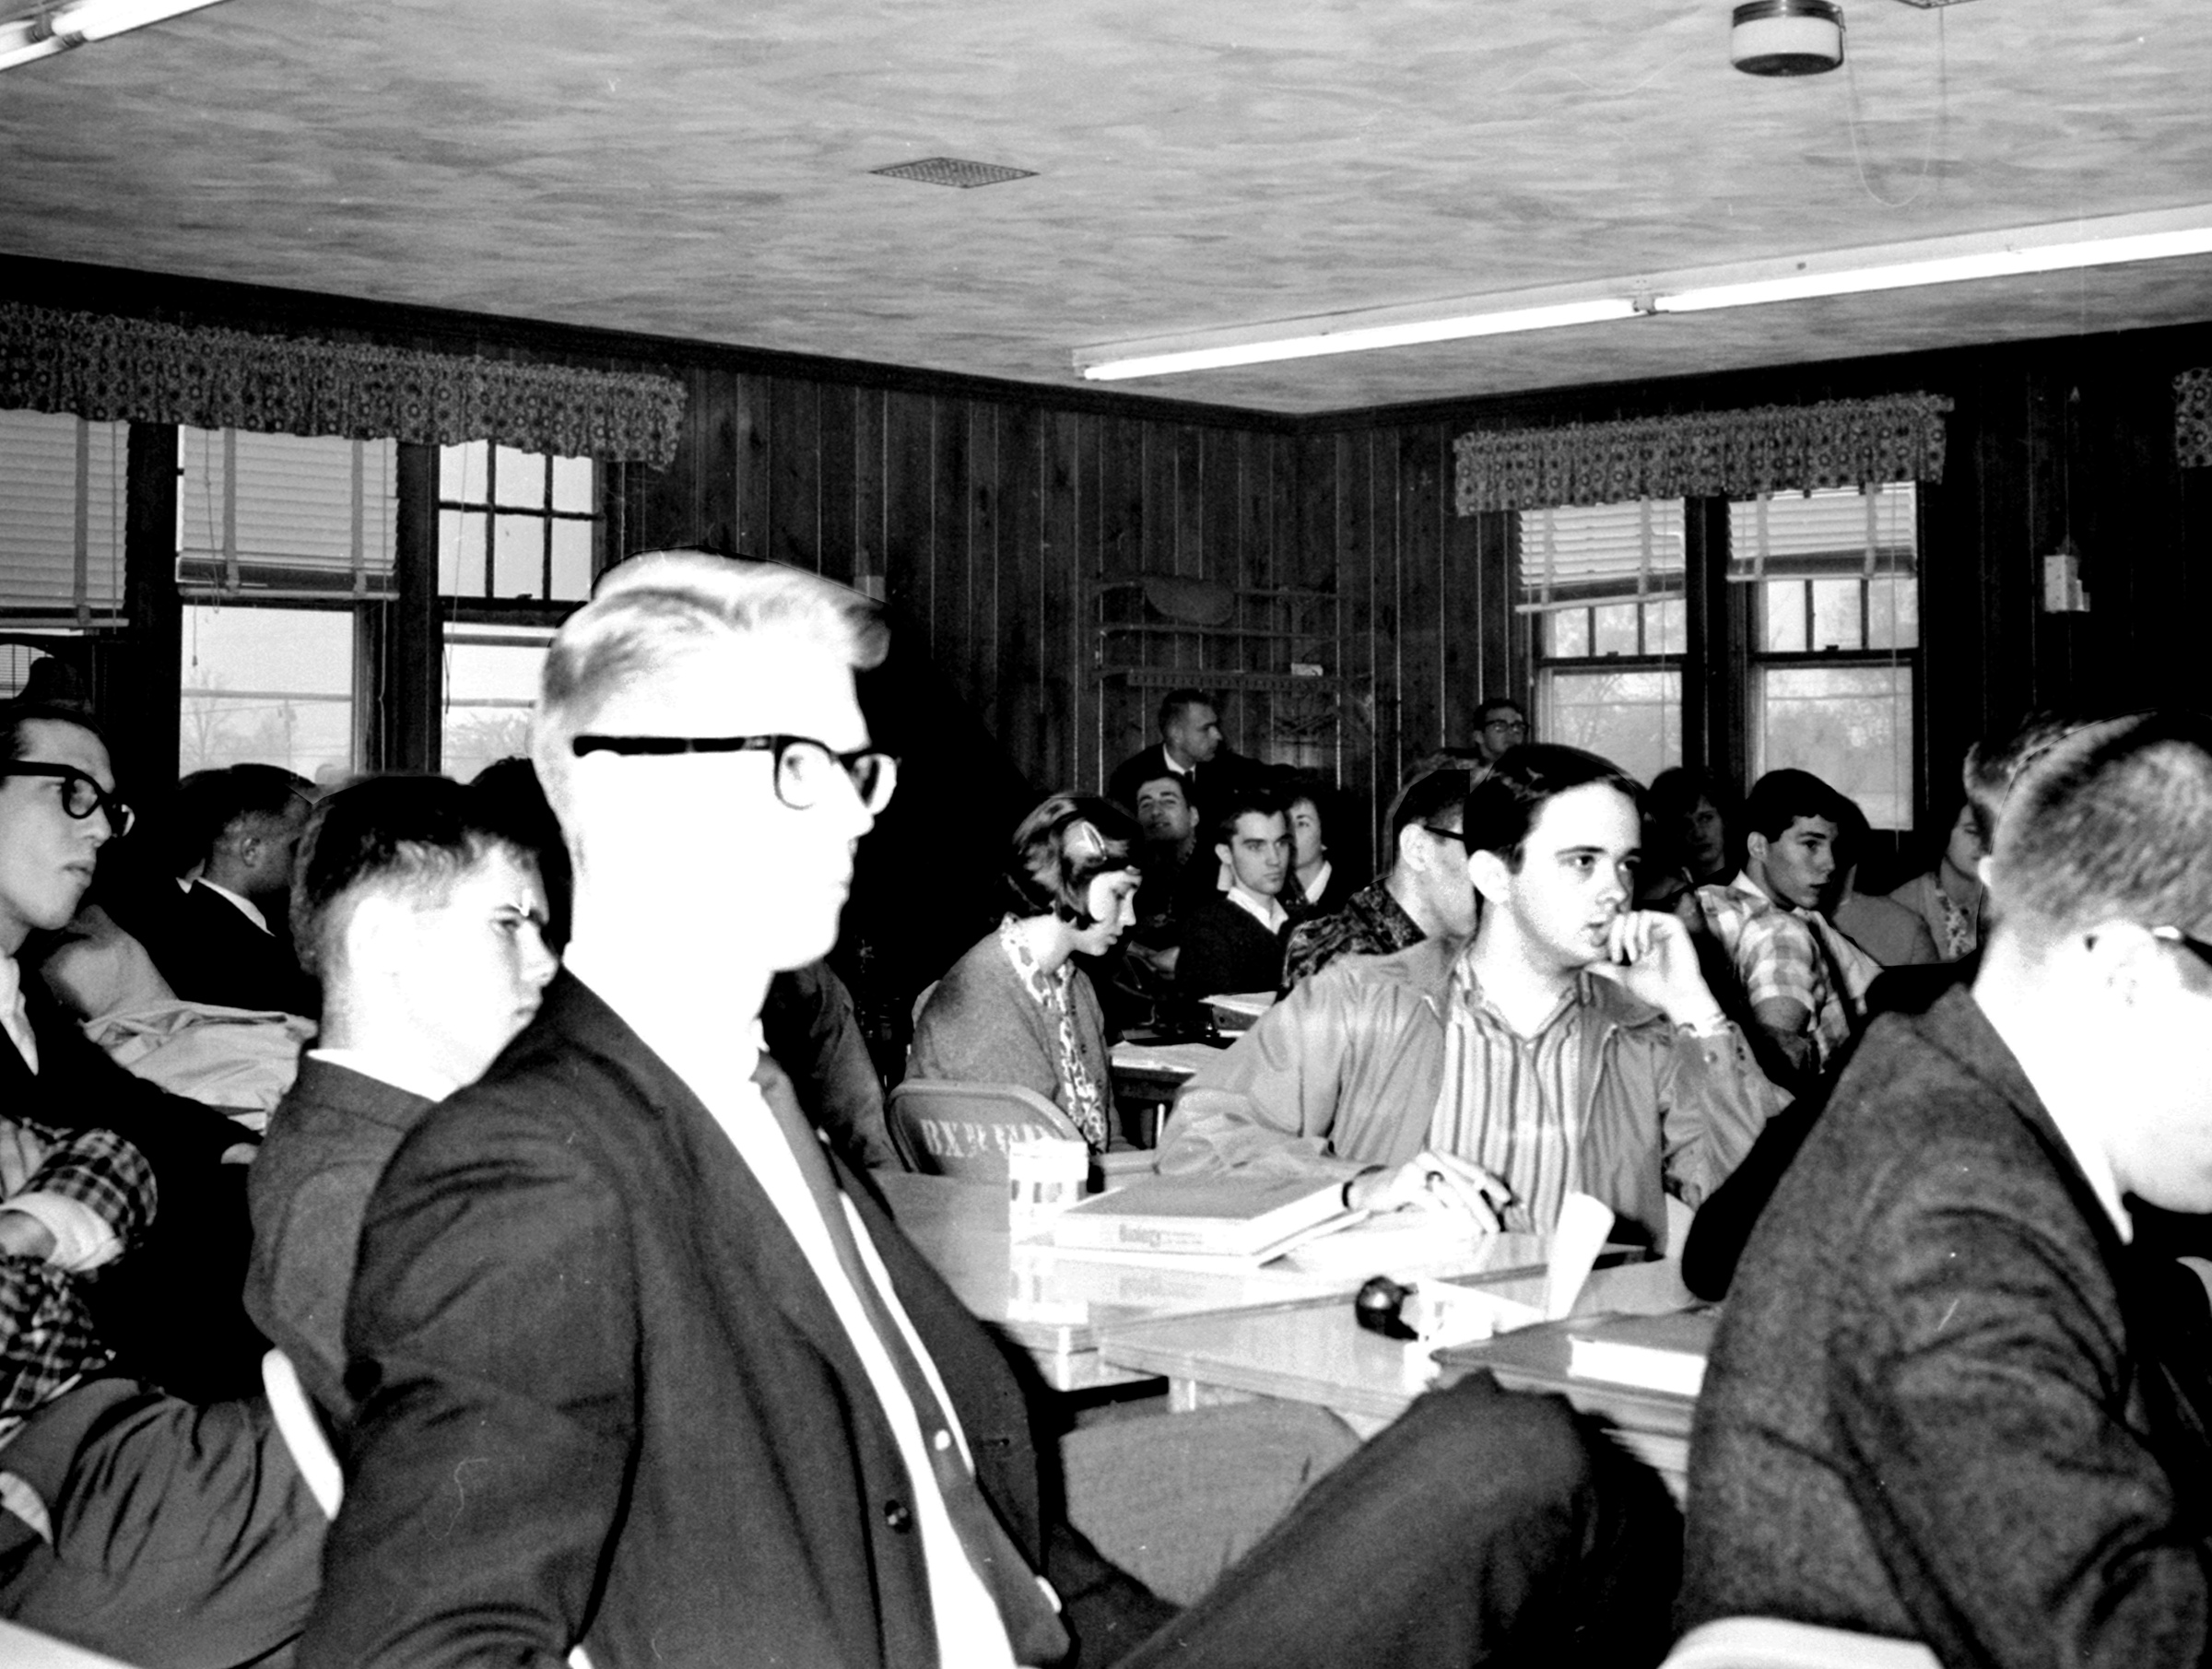 Student Government election debates, student lounge (firehouse meeting hall), 1964.